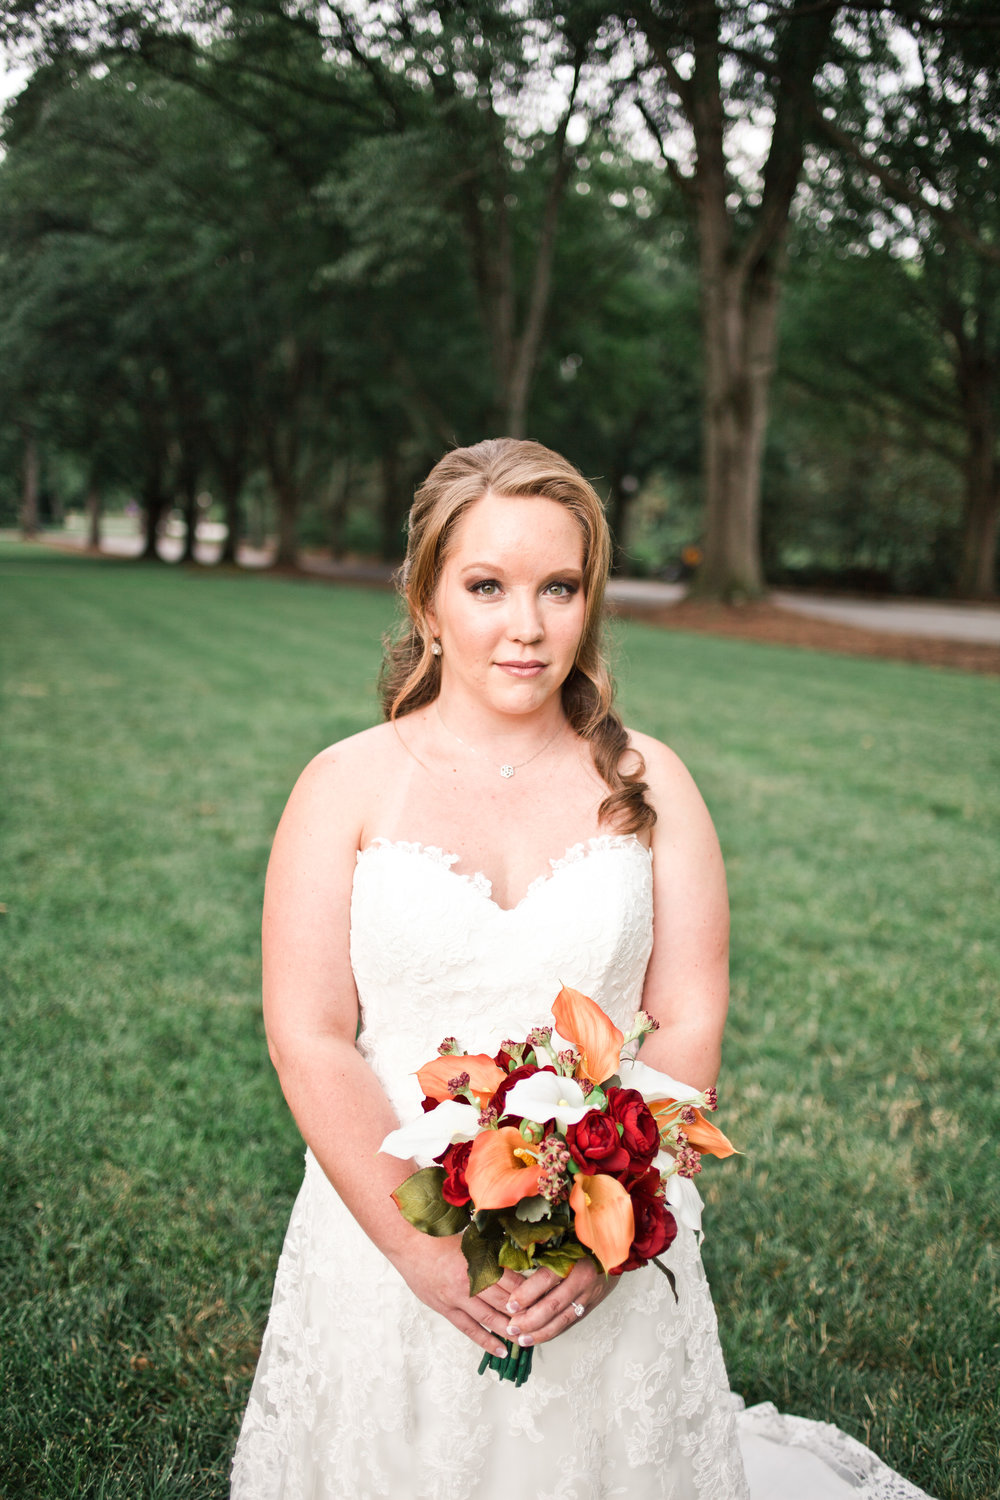 gabbie_bridal_poured_out_photography-19.jpg